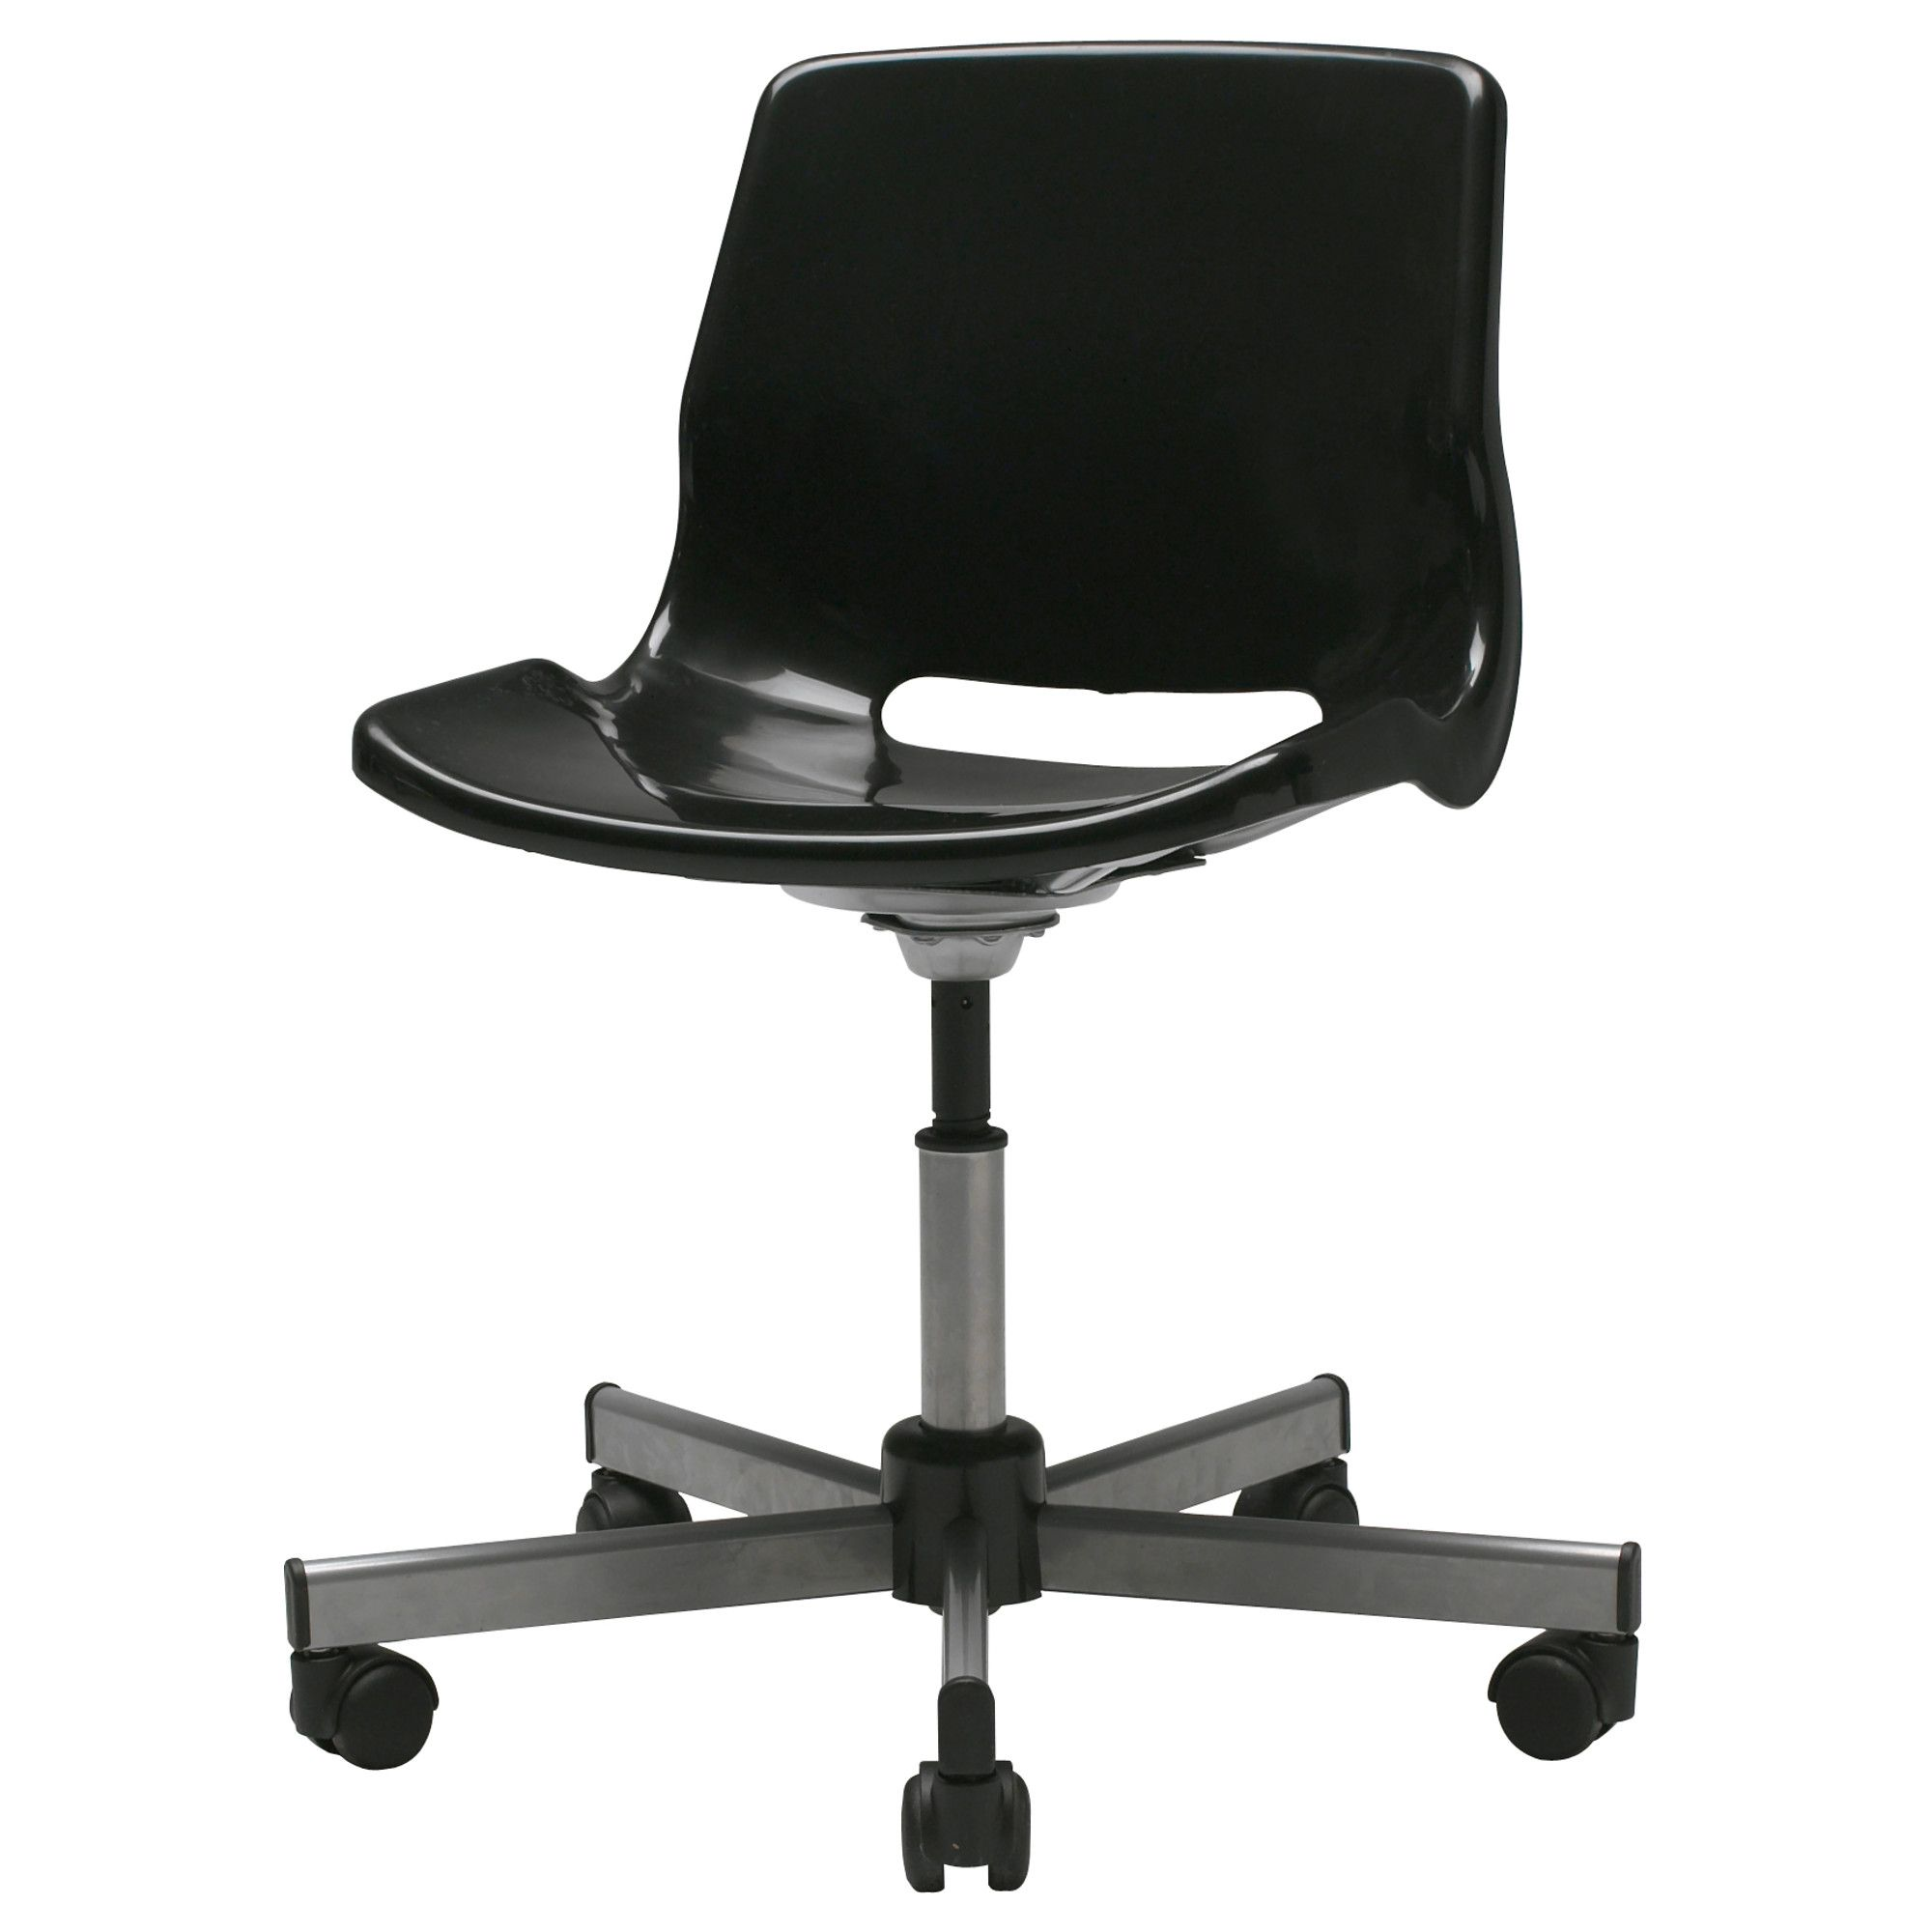 Shop For Furniture Home Accessories More Swivel Chair Office